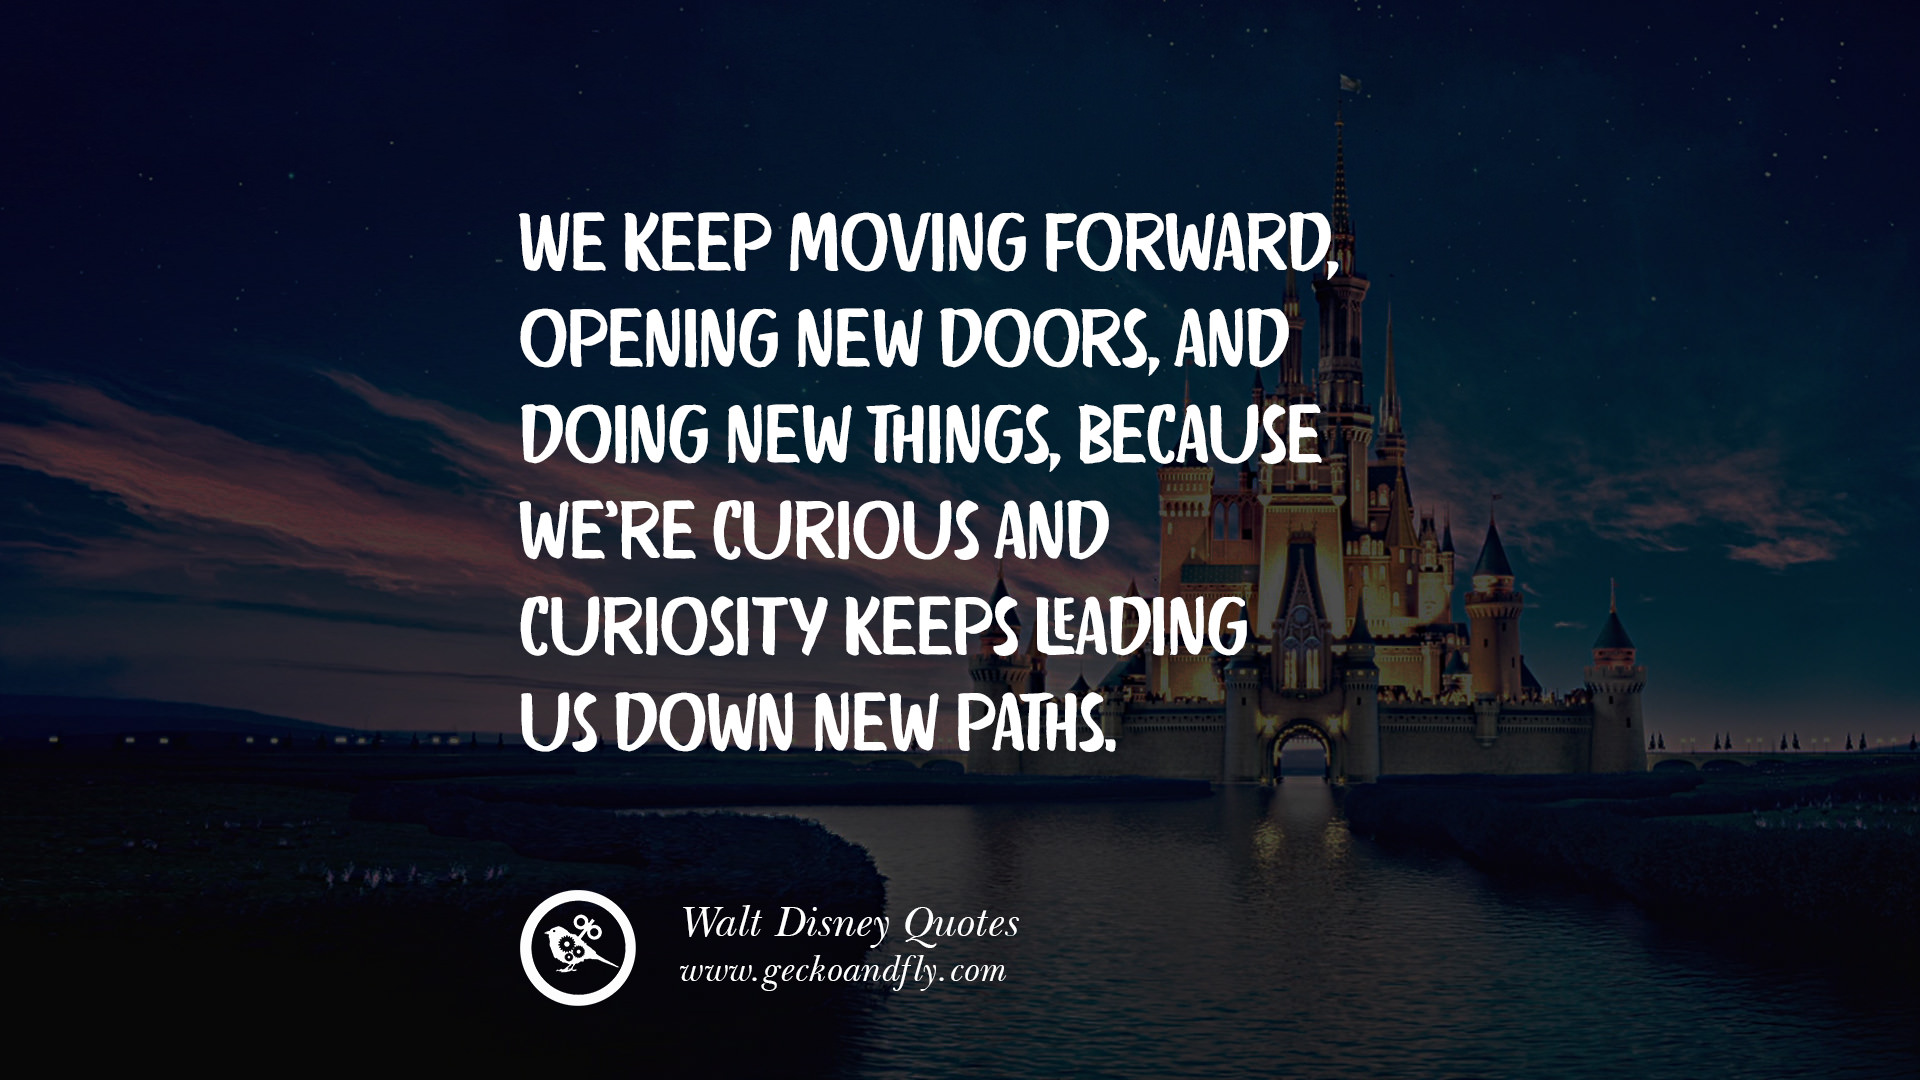 Moving Forward Quotes 12 'keep Moving Forward' Walt Disney Quotes  Geckoandfly 2018